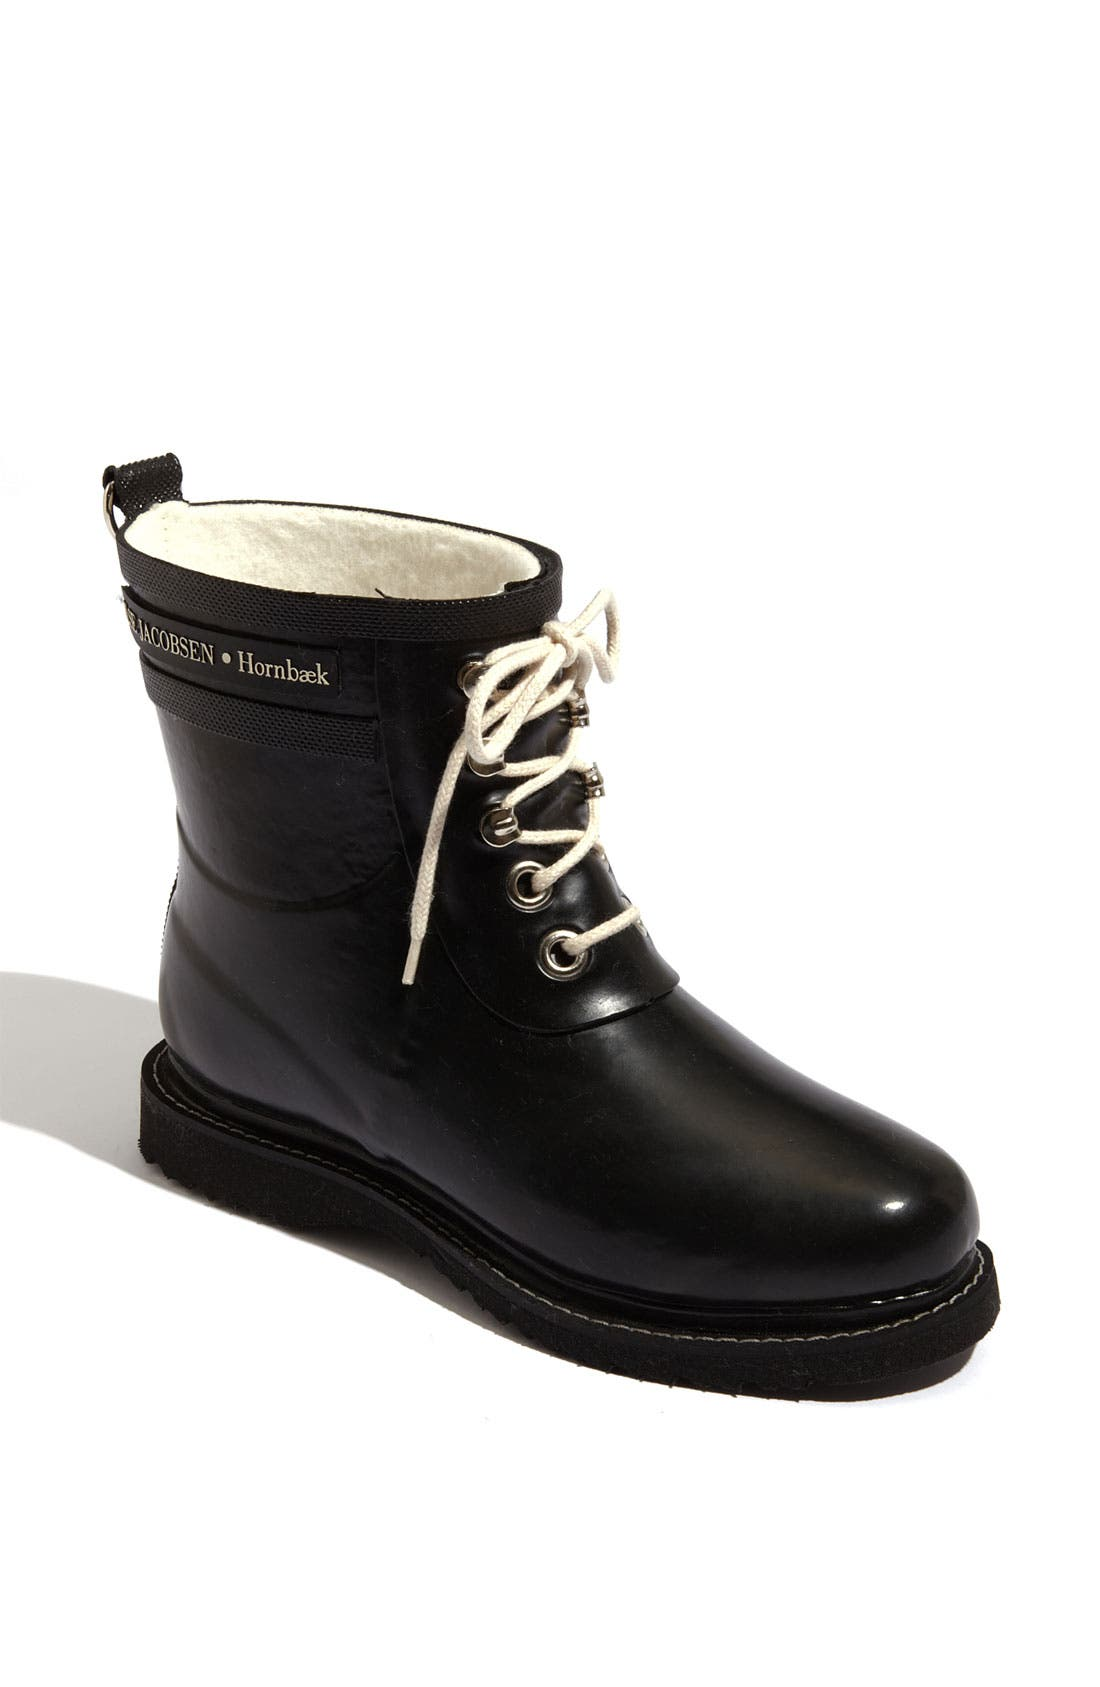 ILSE JACOBSEN 'Rub' Boot in Black